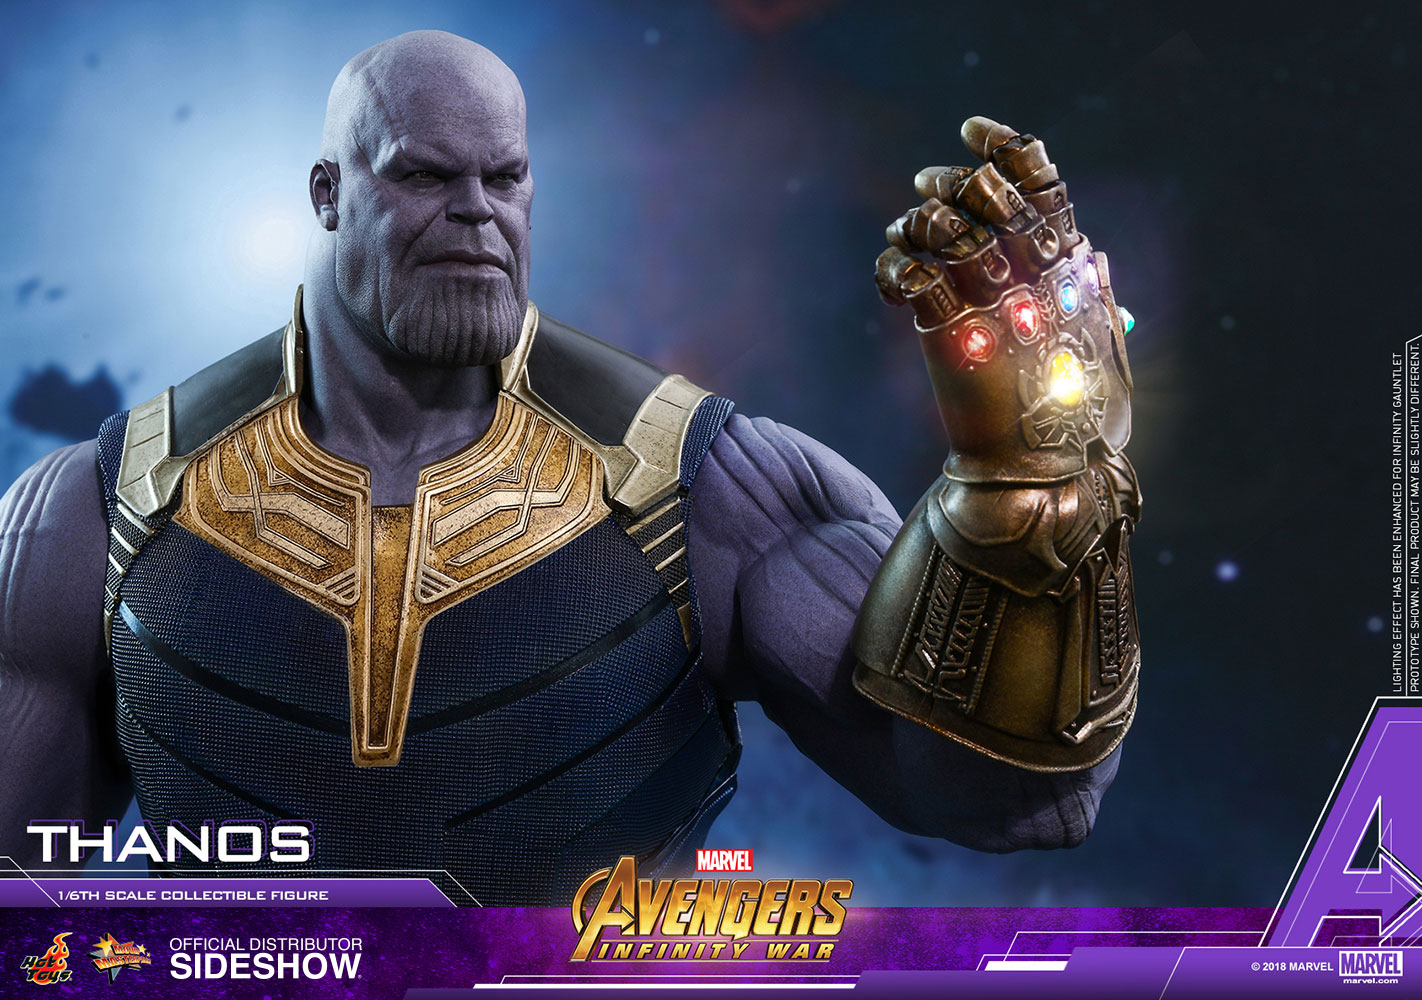 marvel-avengers-infinity-war-thanos-sixth-scale-figure-hot-toys-903429-13